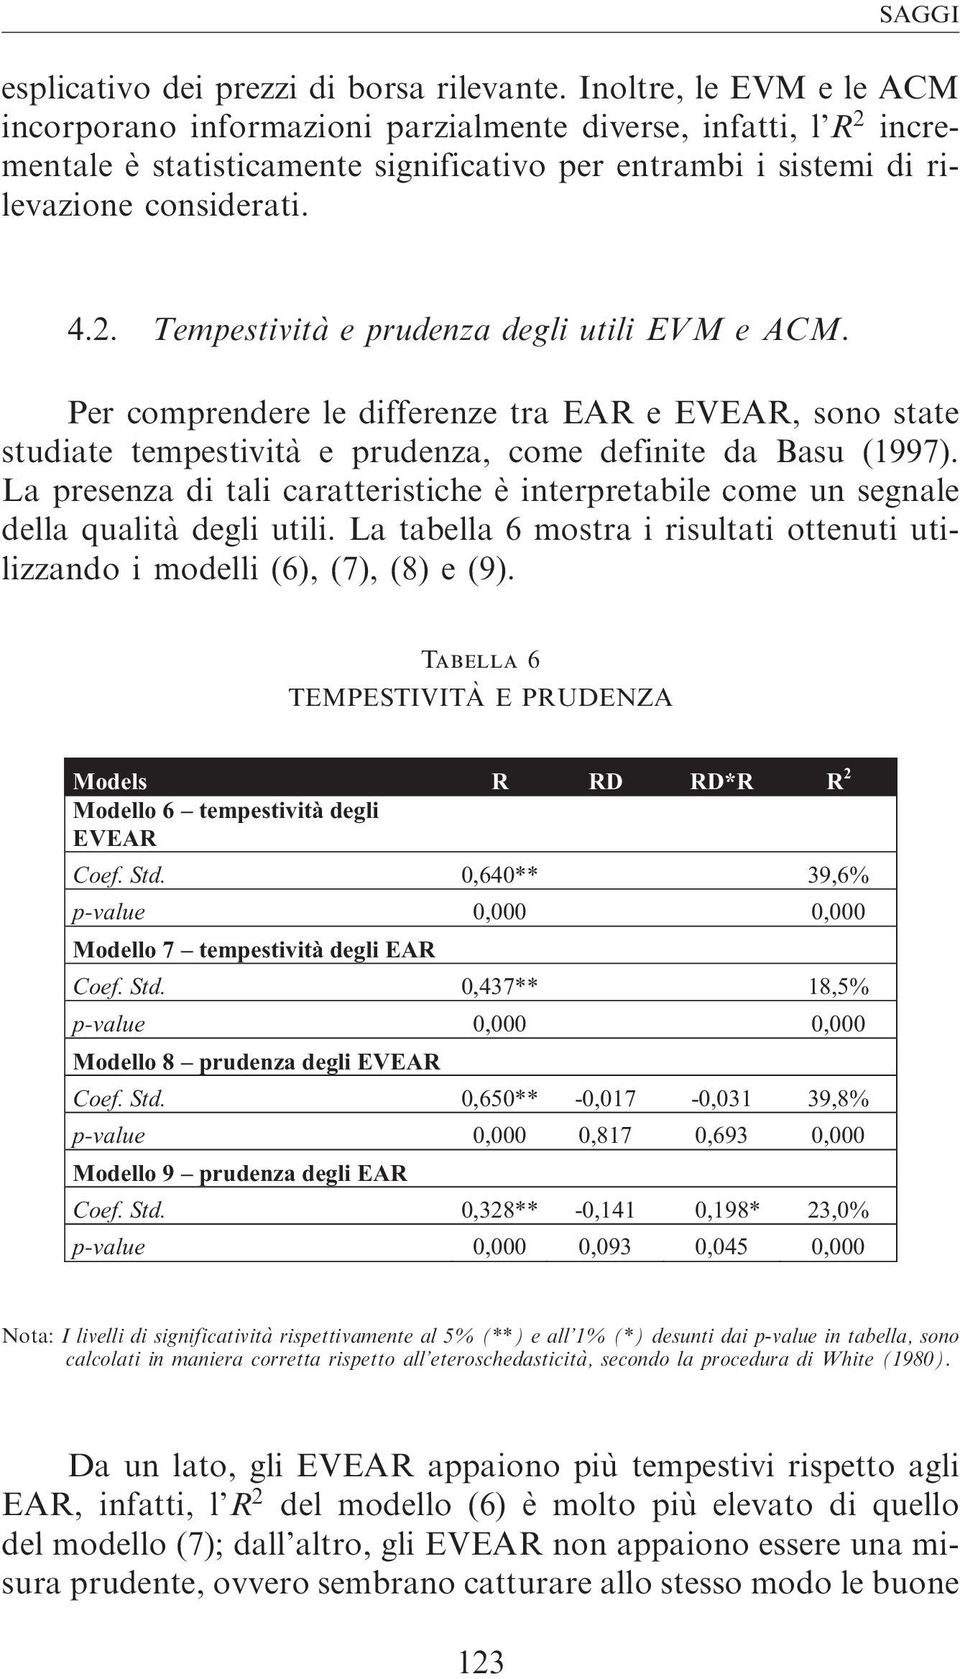 Per comprendere le differenze tra EAR e EVEAR, sono state studiate tempestivita` e prudenza, come definite da Basu (1997).